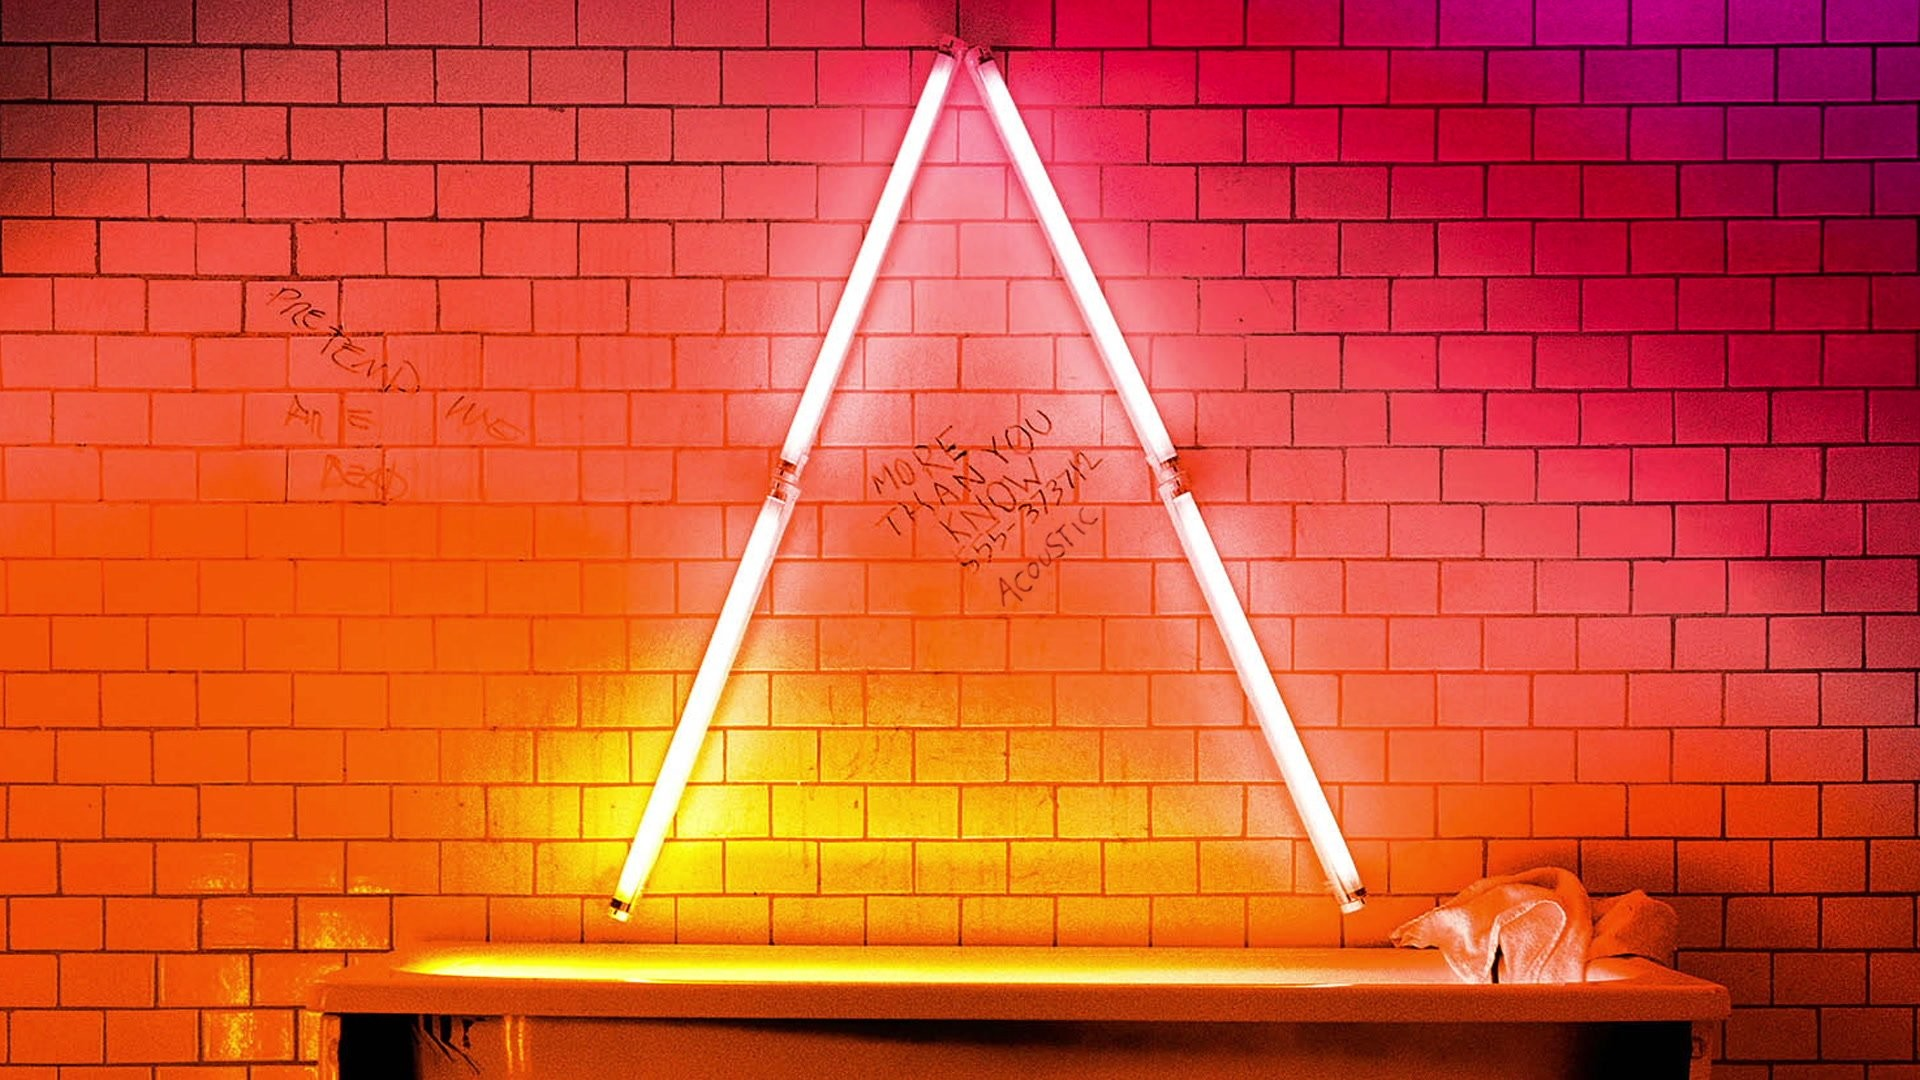 Cute Minimalistic Wallpapers Axwell Ingrosso Wallpapers 78 Images